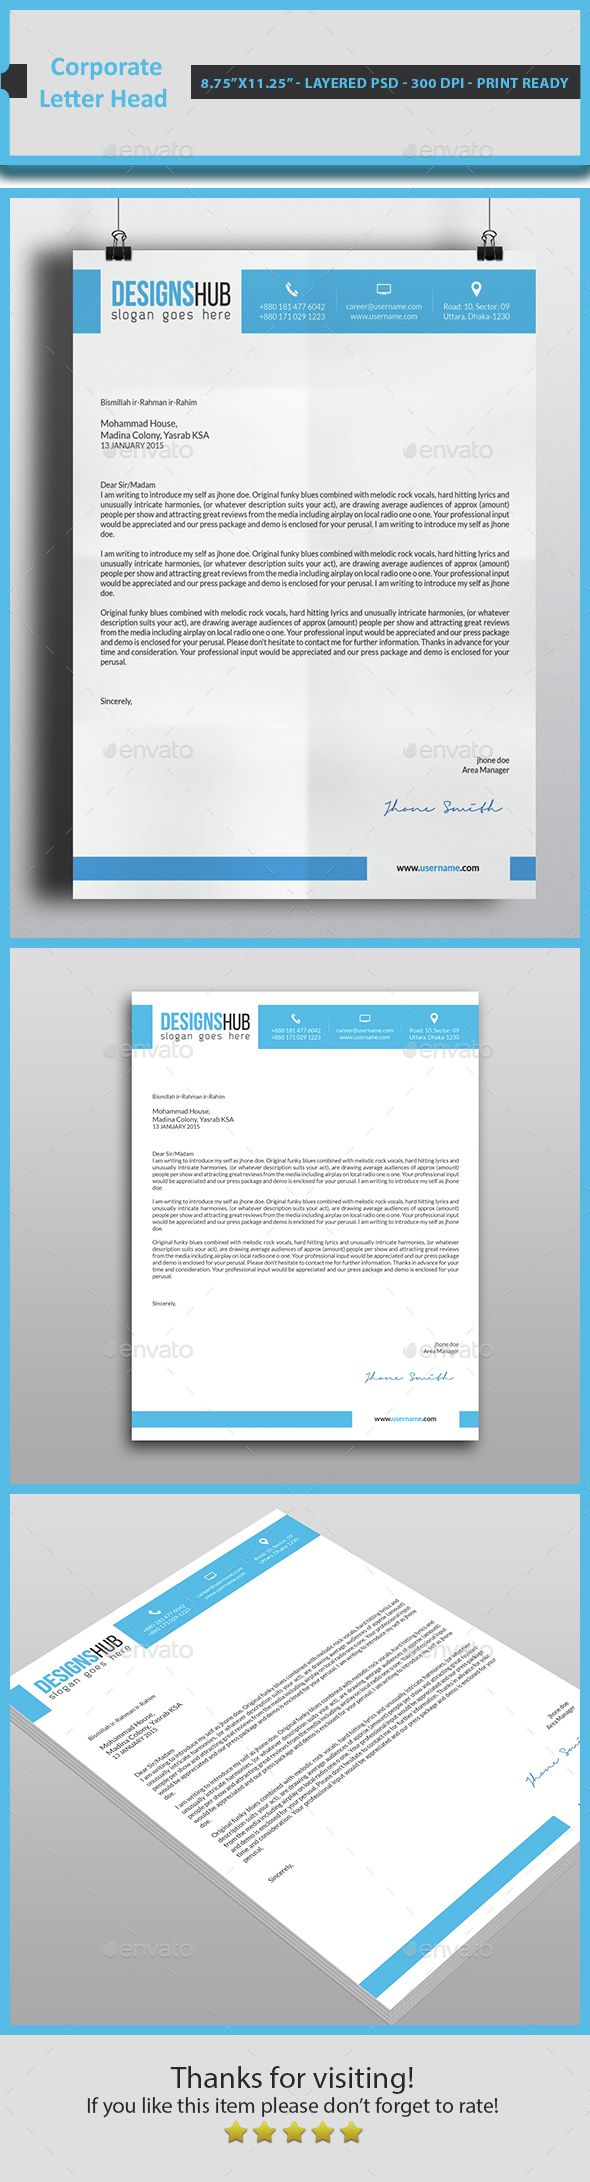 #Corporate Letter Head.Download here: http://graphicriver.net/item/corporate-letter-head/14715283?ref=arroganttype